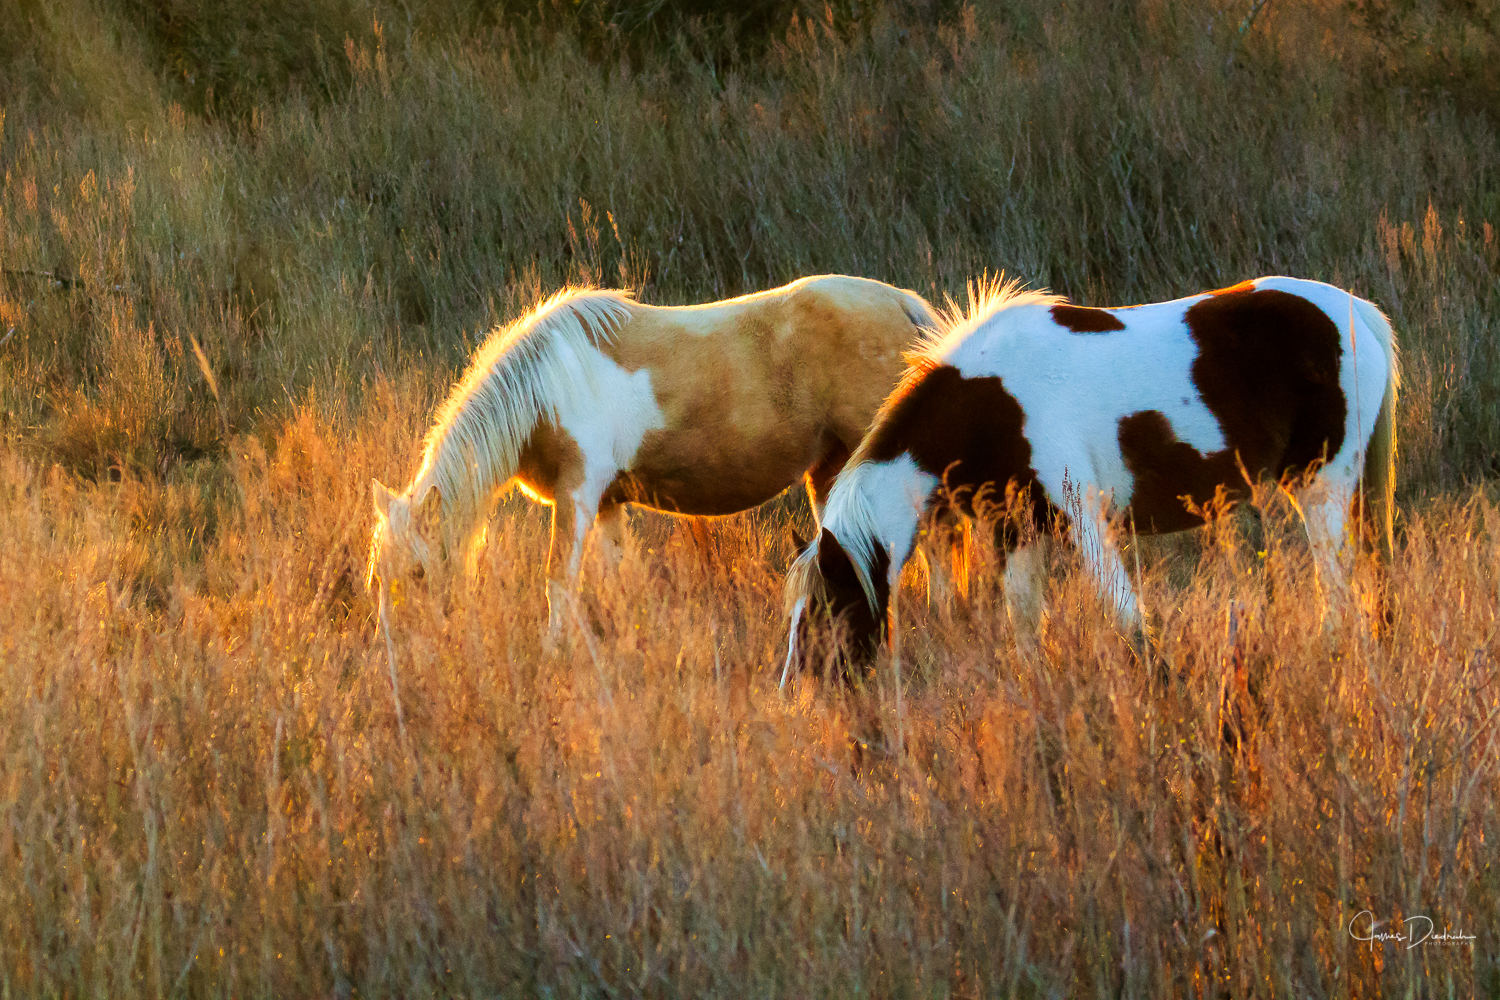 The sun was just touching upon the horses.